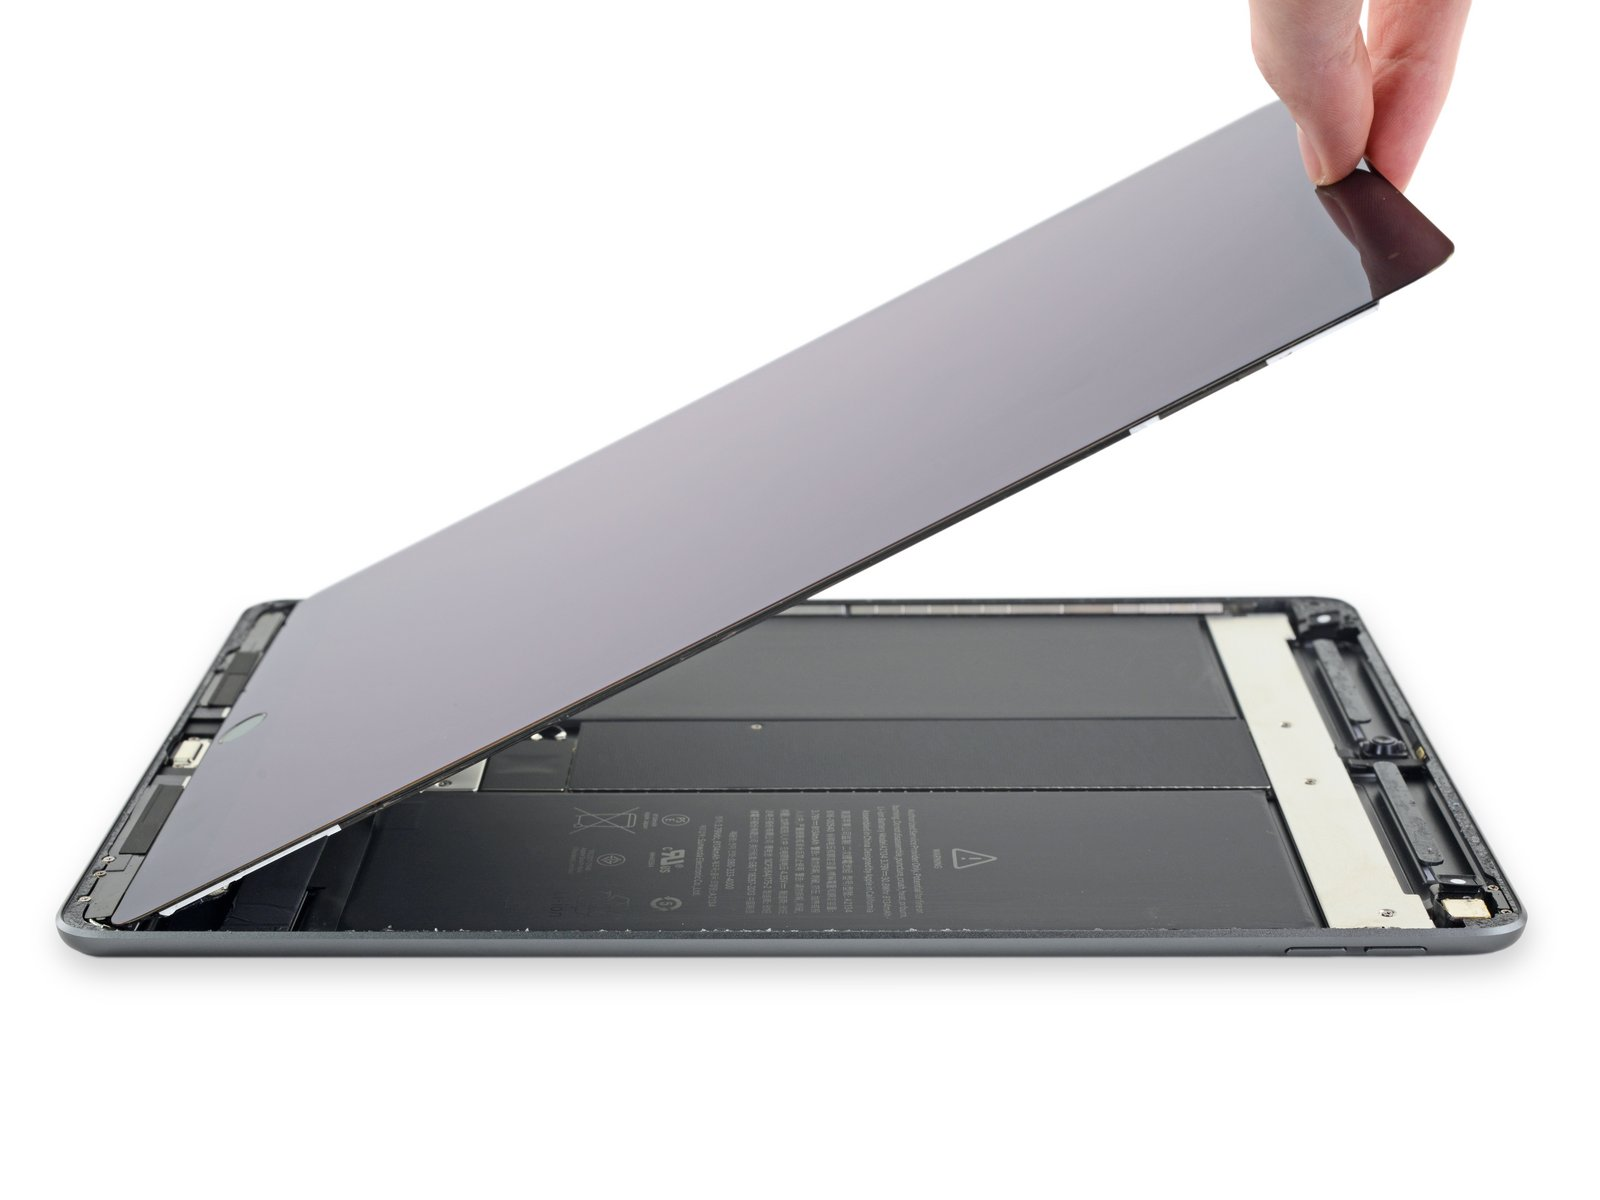 New iPad Air is almost equal to the late iPad Pro of 10.5 inches